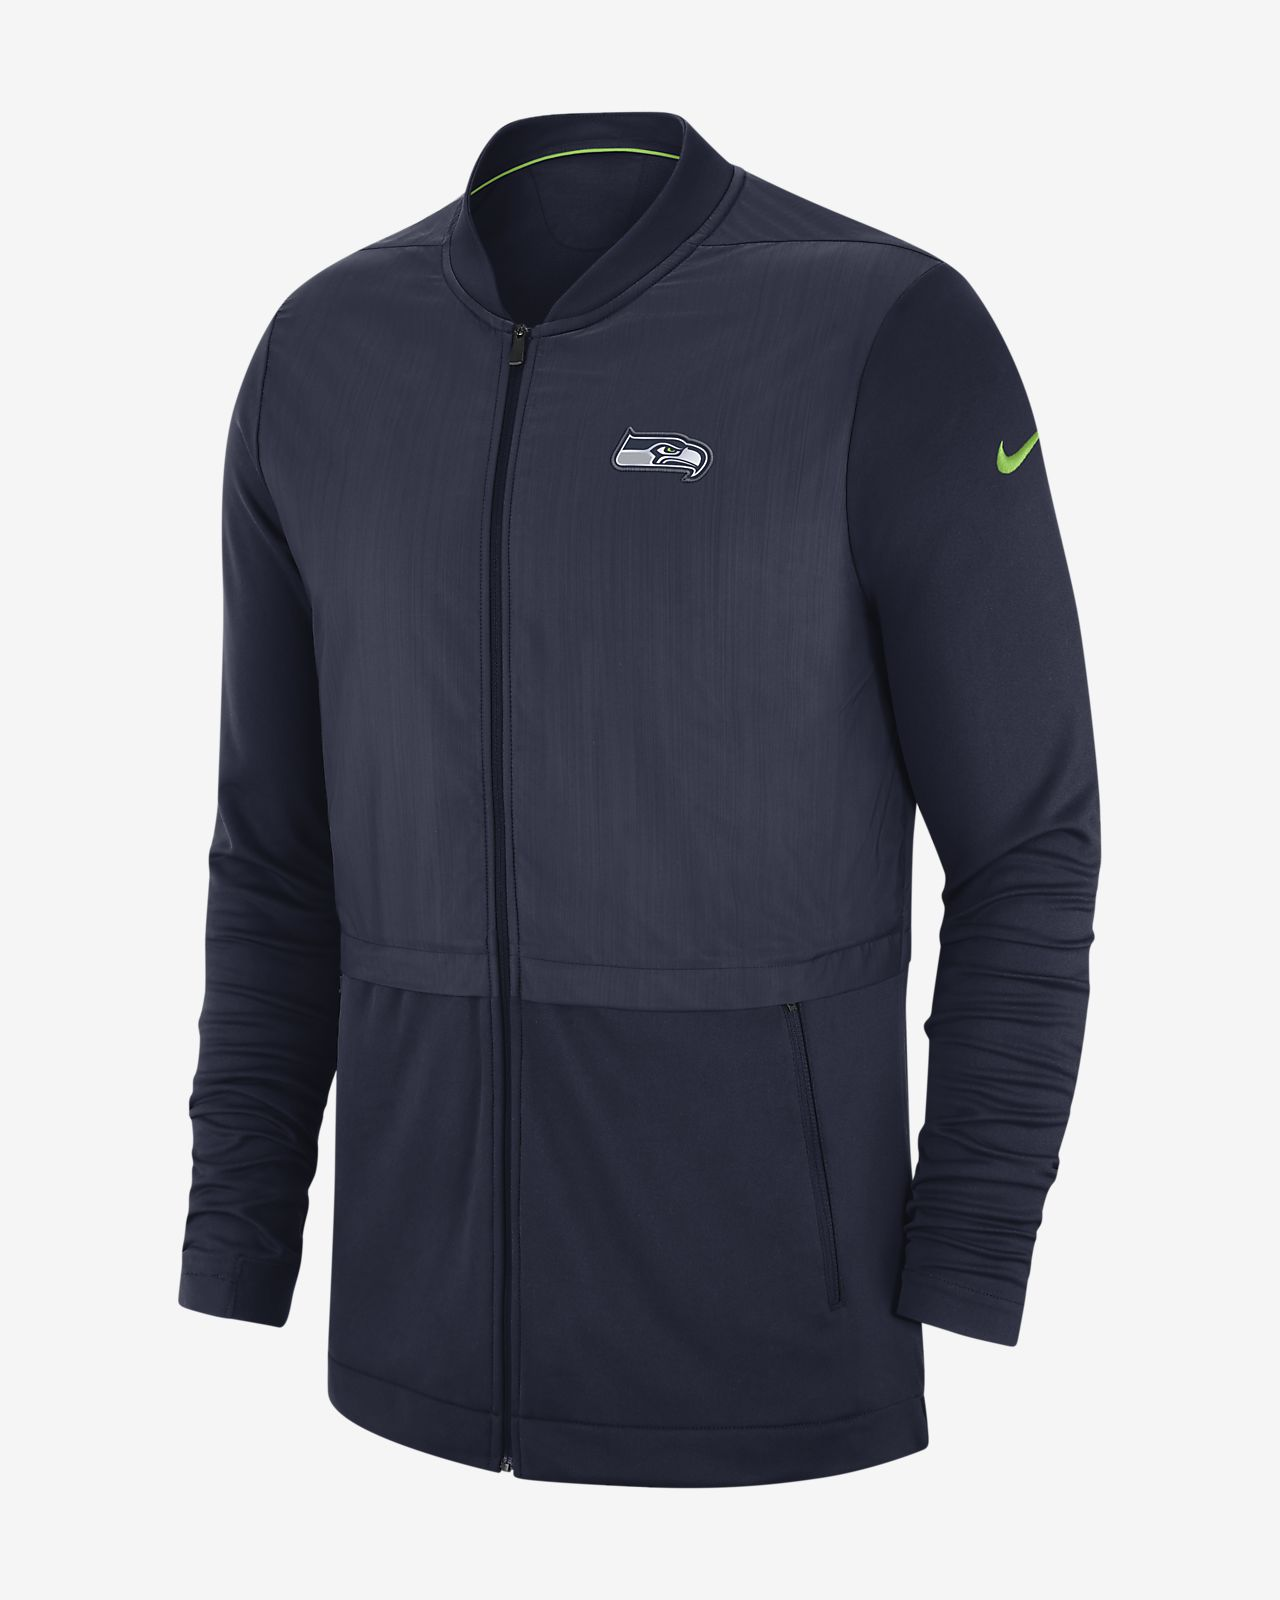 1fce5042fd26 Nike Elite Hybrid (NFL Seahawks) Men s Full-Zip Jacket. Nike.com